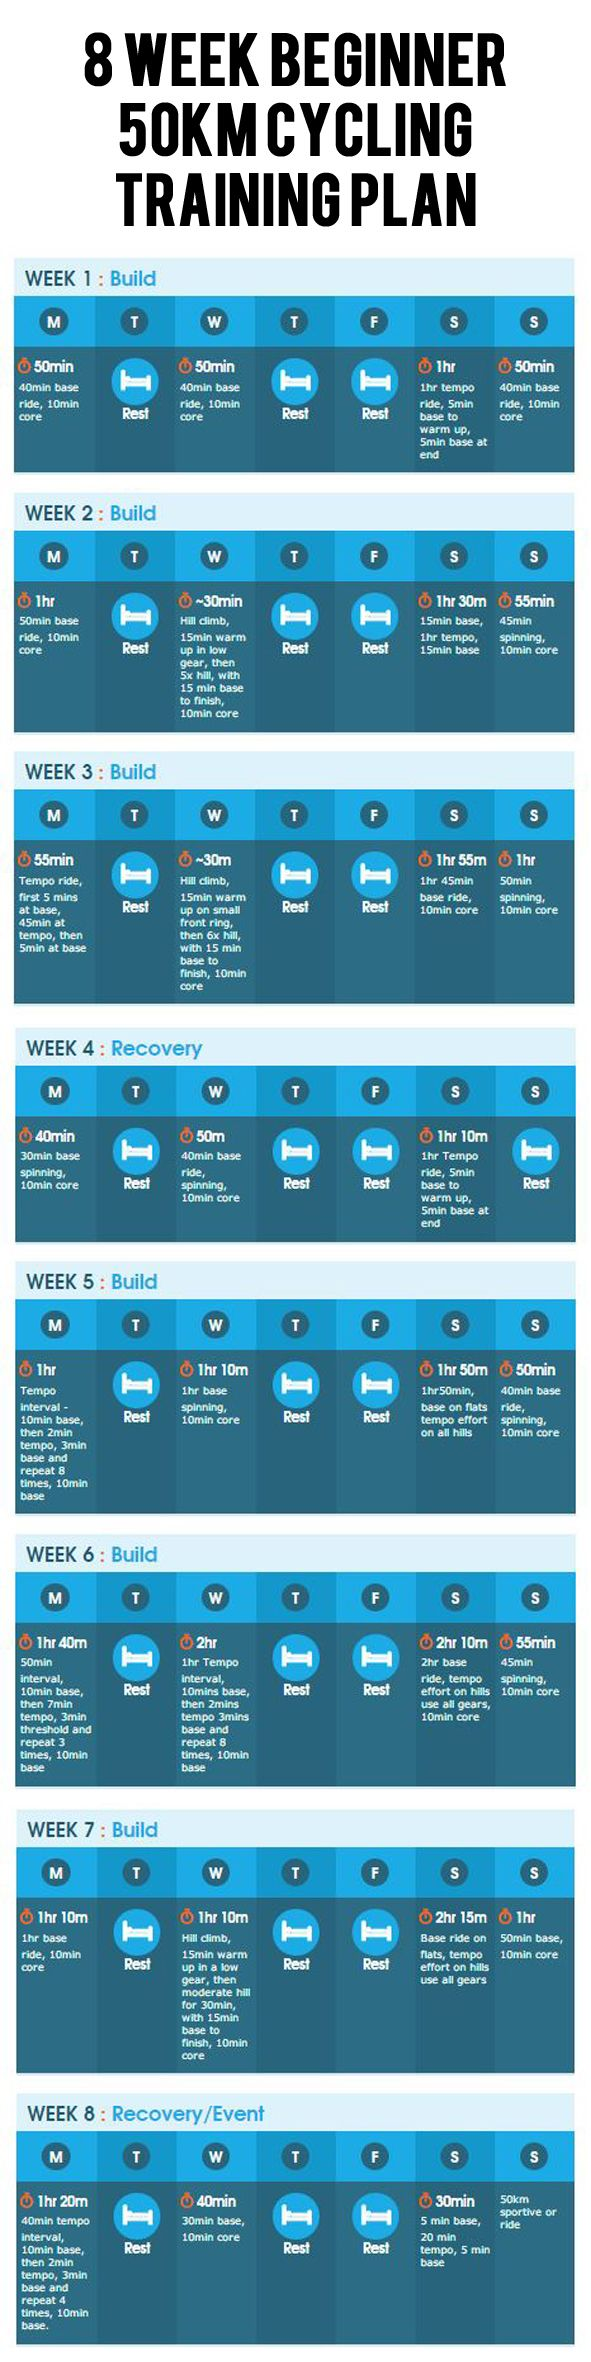 8 WEEK BEGINNER 50KM CYCLING TRAINING PLAN. #50k #cycling #bike #bicycle…